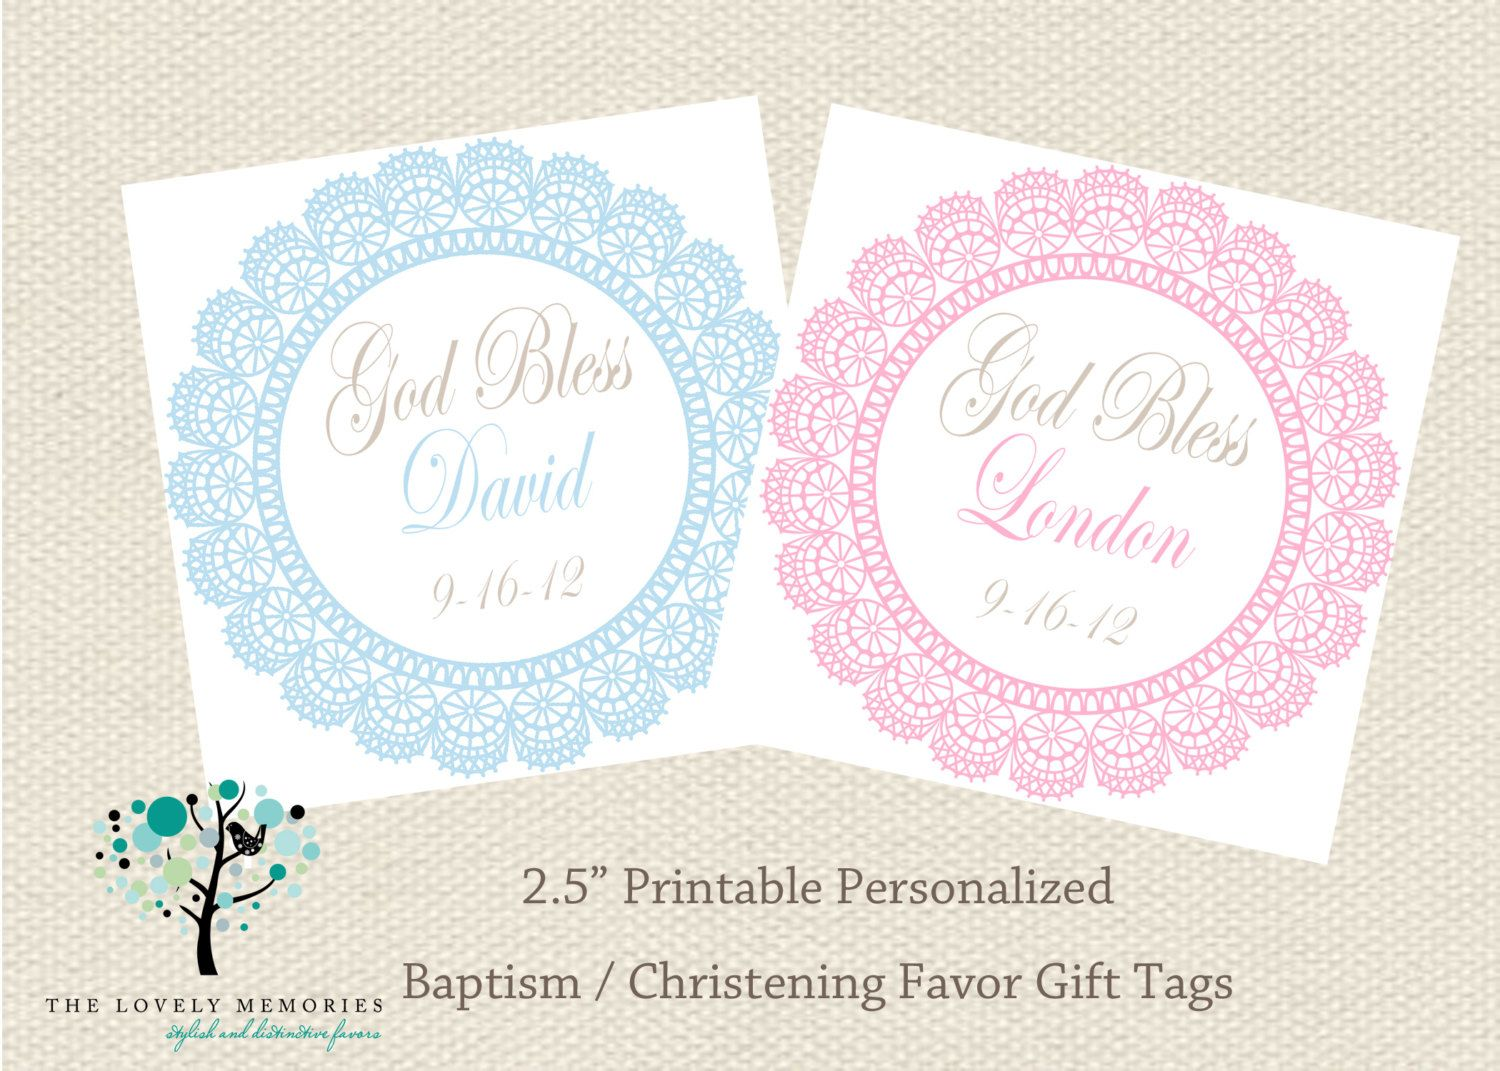 Baptism And Christening Favor Gift Tags Diy Printable On Etsy Gift Tags Diy Christening Favors Gift Tags